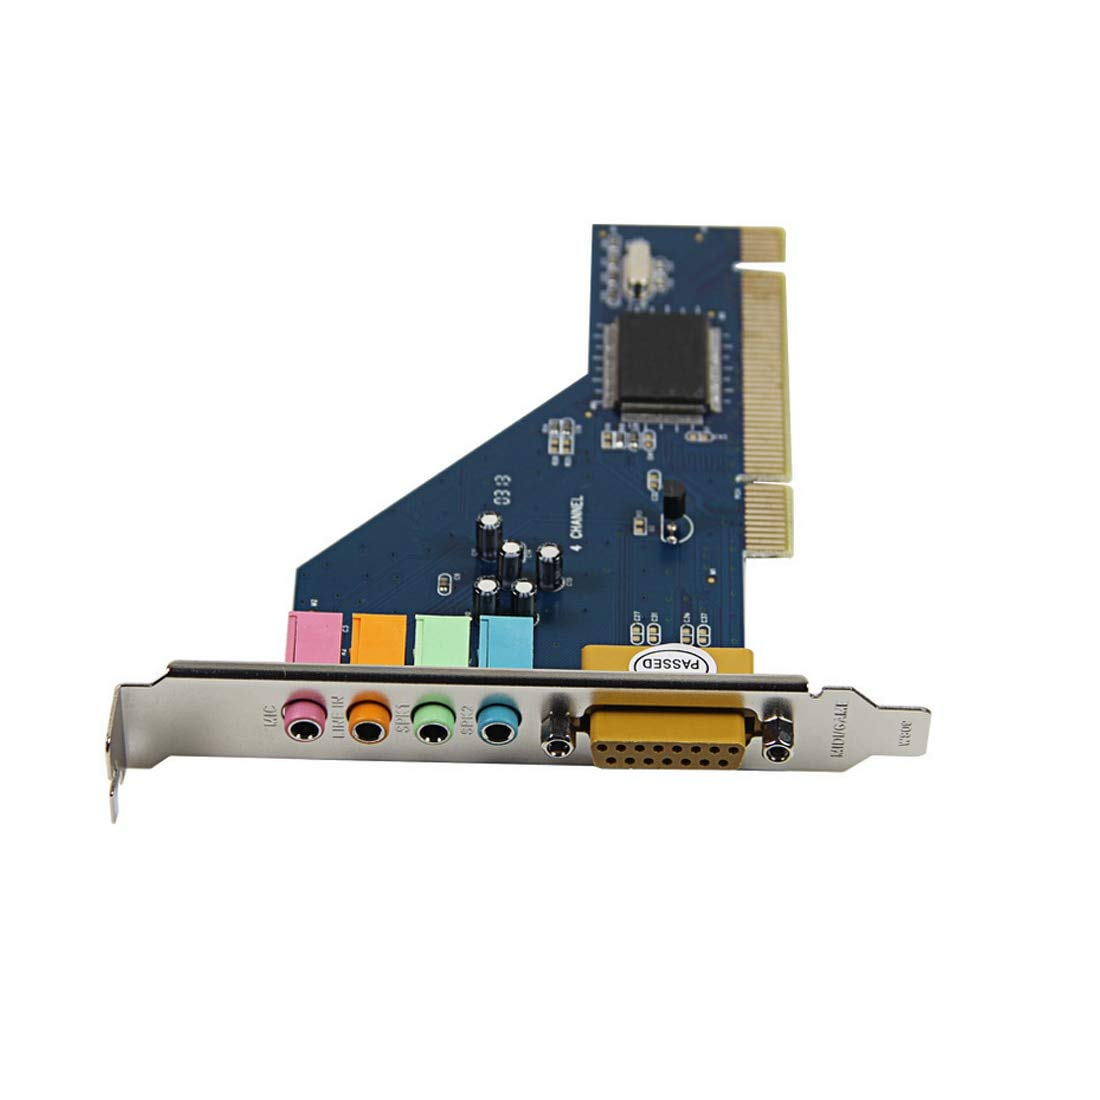 iHen-Tech 4 Channel 8738 Chip 3D Audio Stereo PCI Sound Card for Win7 64 Bit